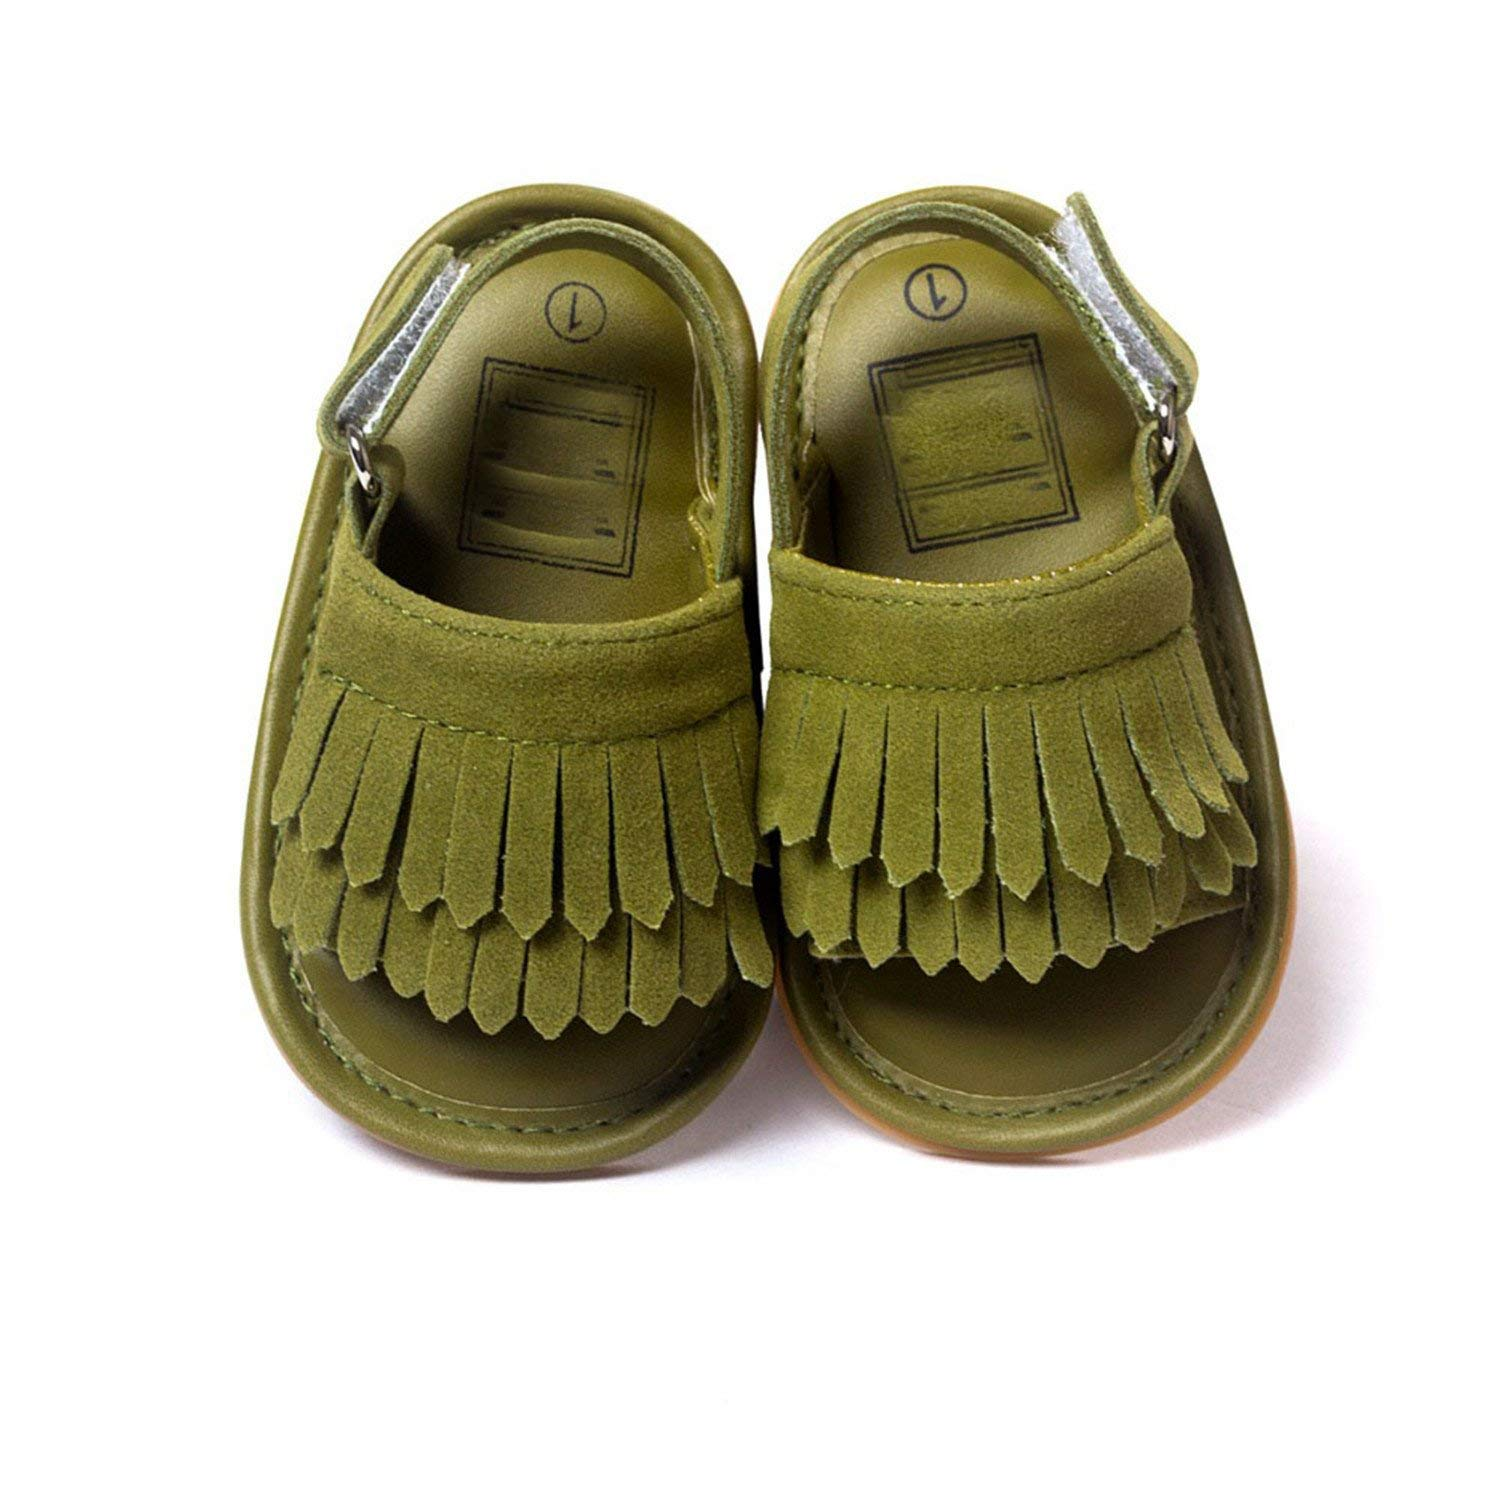 60119b84732ab Cheap Baby Mocassins, find Baby Mocassins deals on line at Alibaba.com